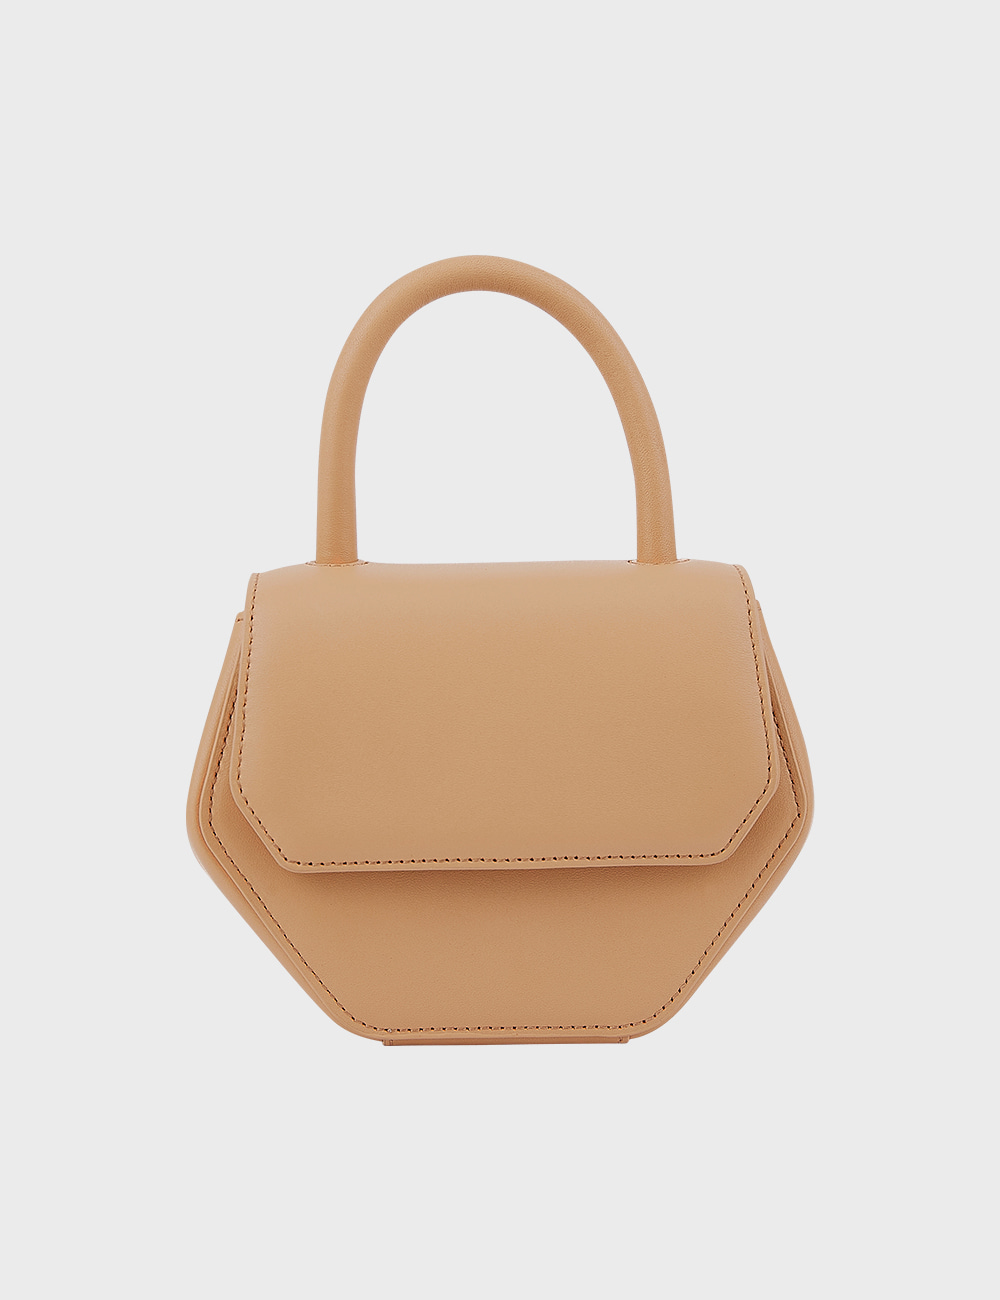 MAISON246,[엄지 착용] 246 MAGOT SMALL BAG - BEIGE,No.246